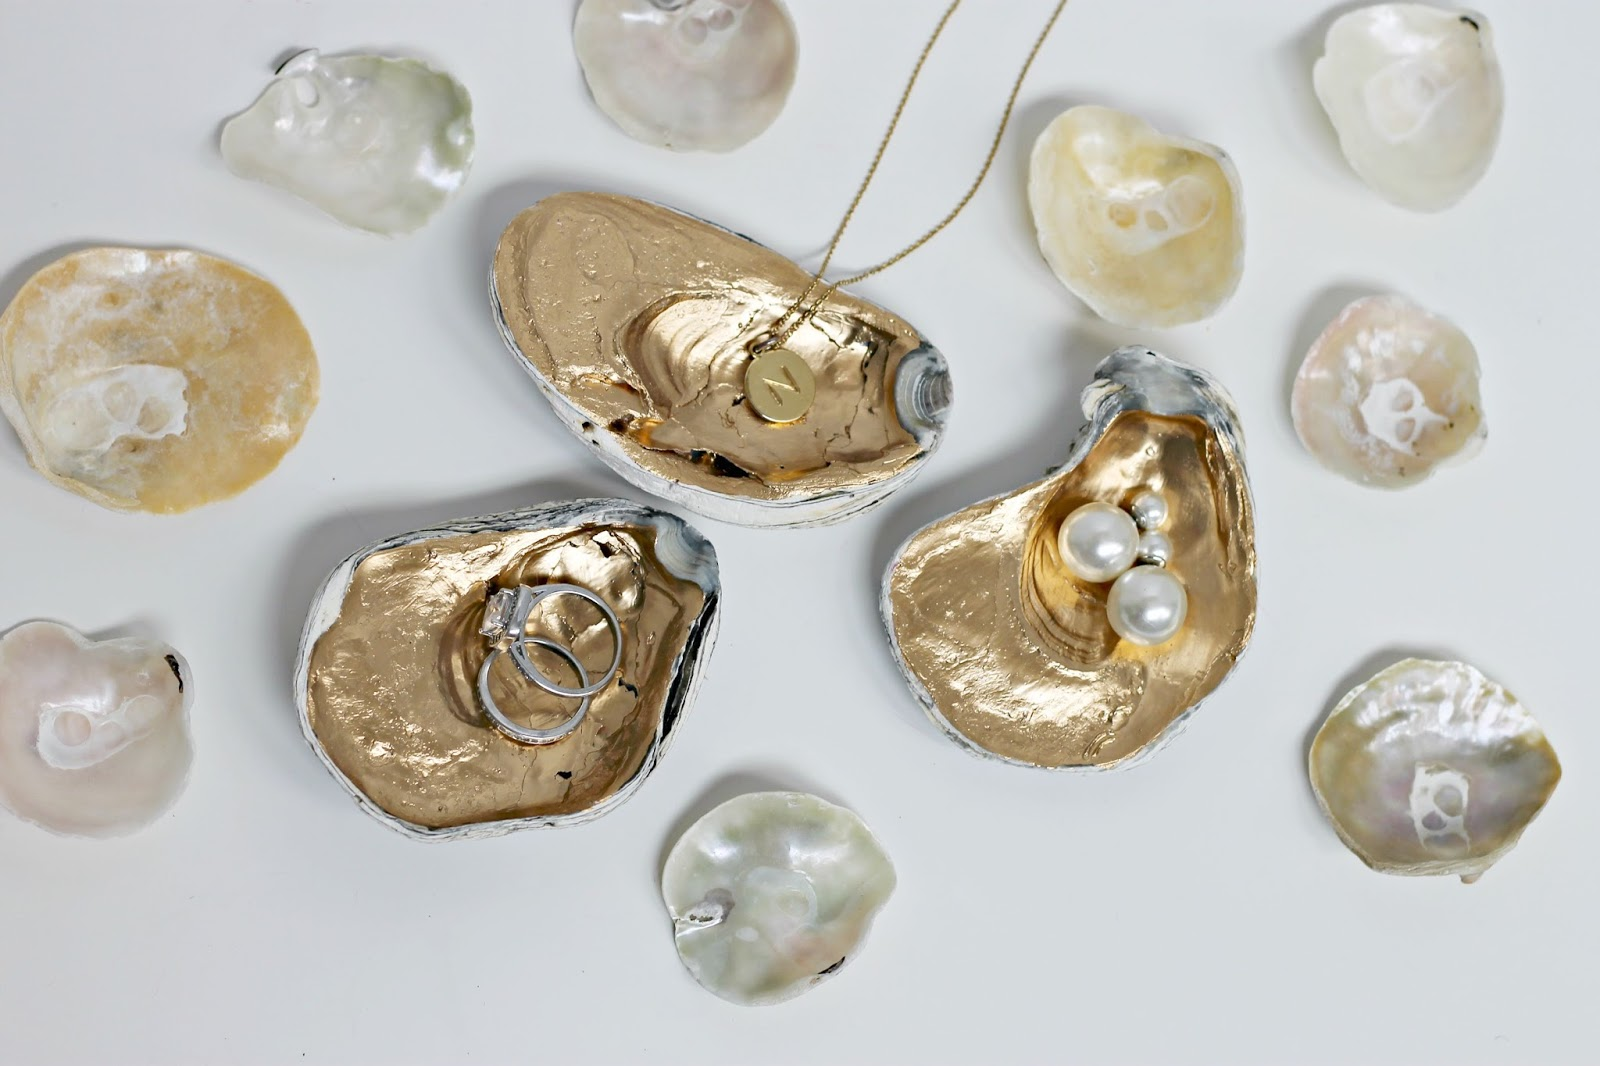 Diy gilded oyster shells shannon claire for Shell diy